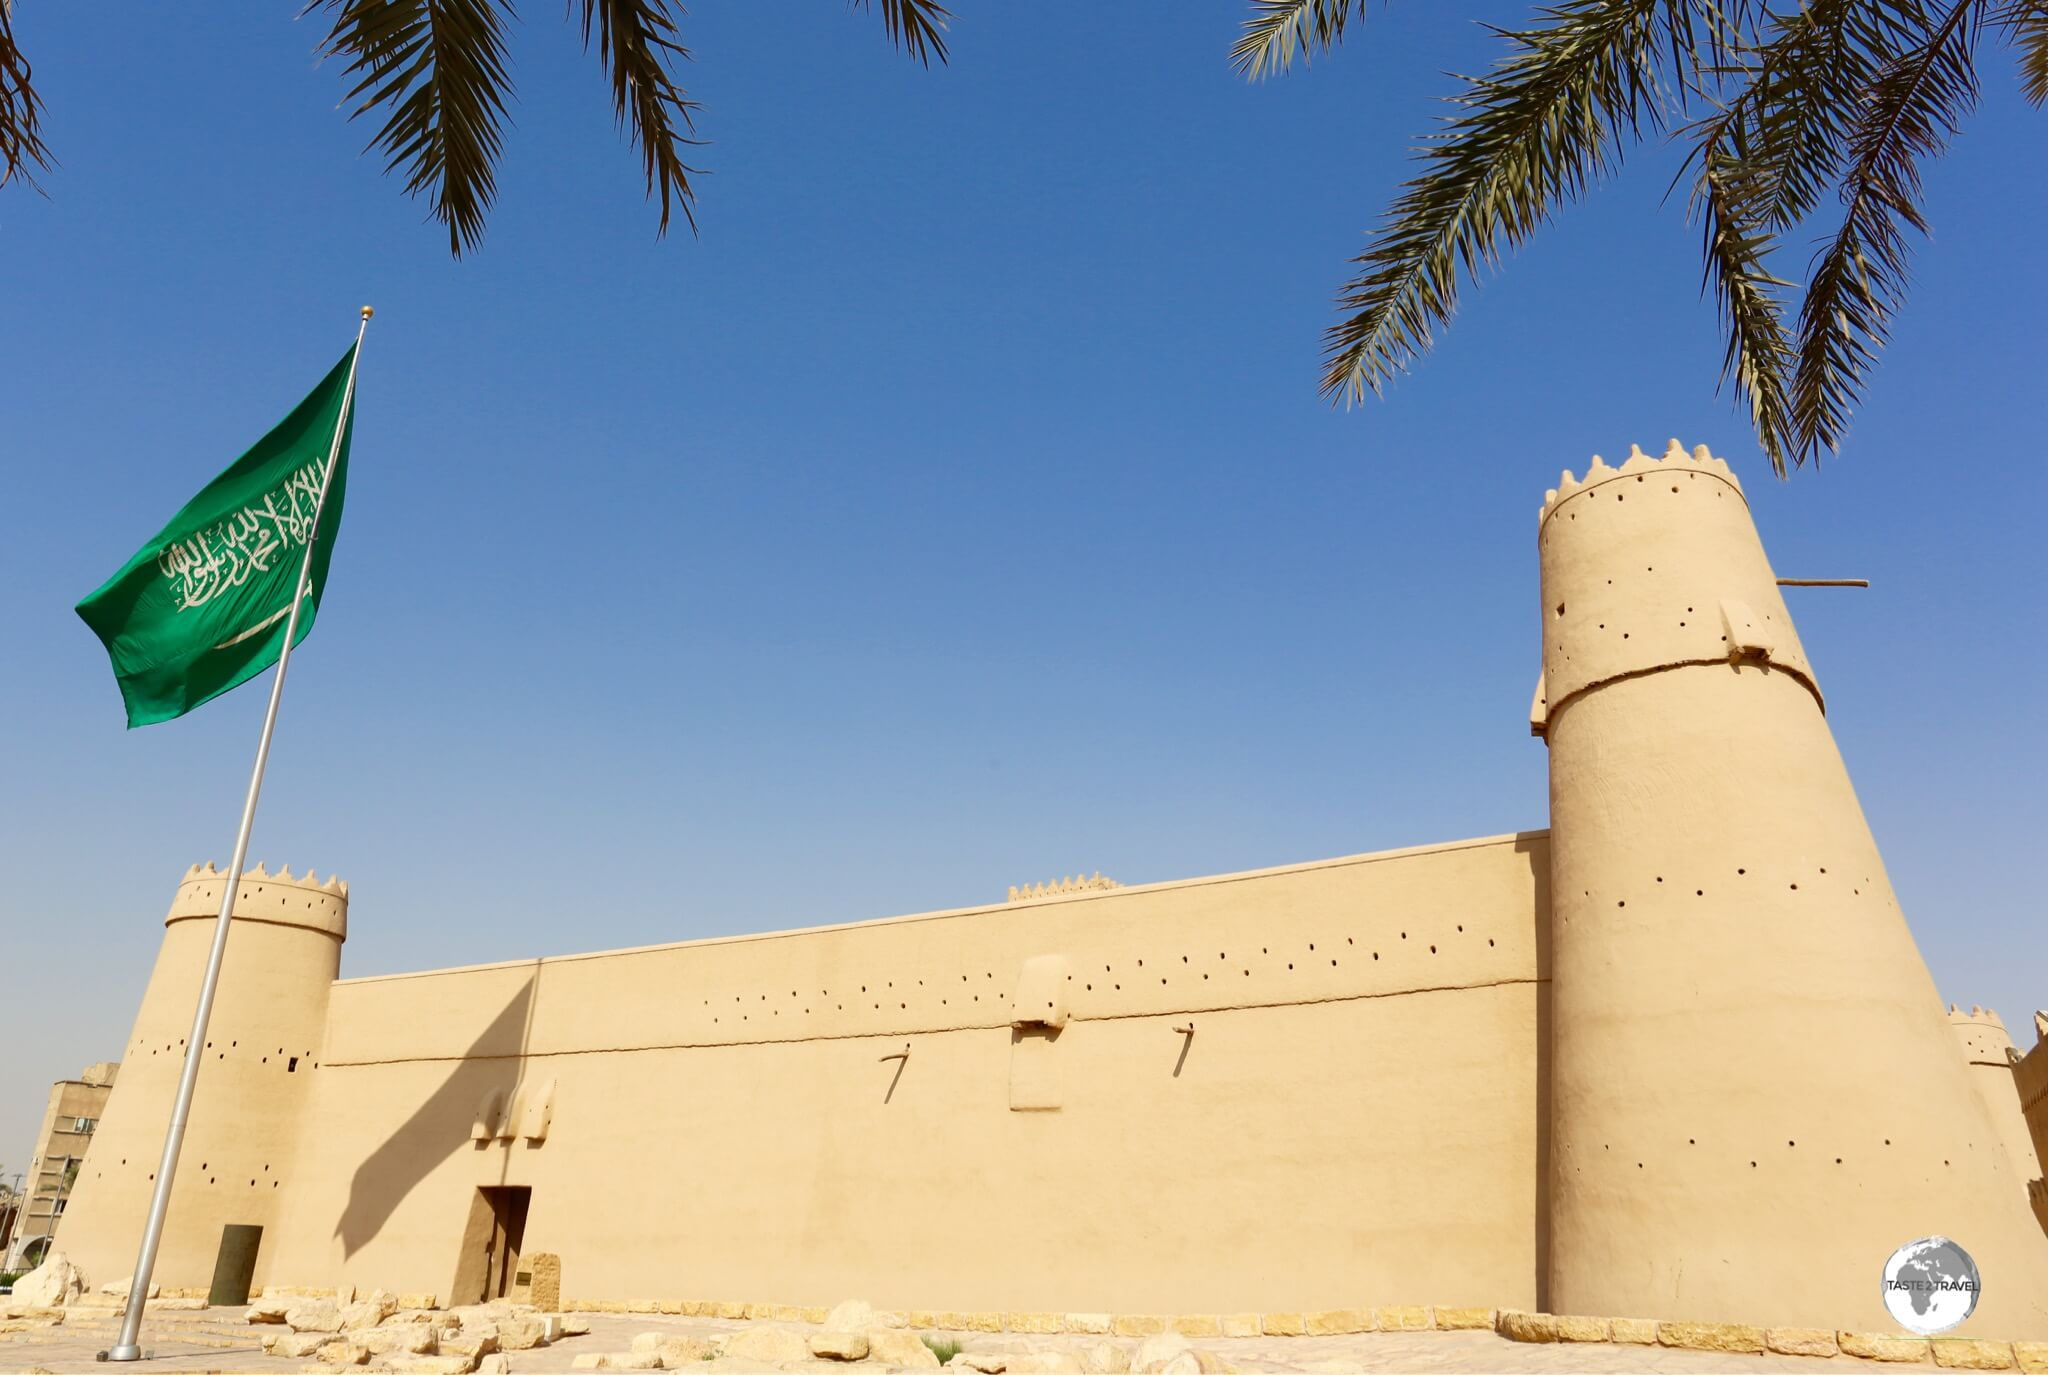 Al Masmak fort in Riyadh played a major part in the kingdom's history, being the first place to be conquered by King Abdulaziz.